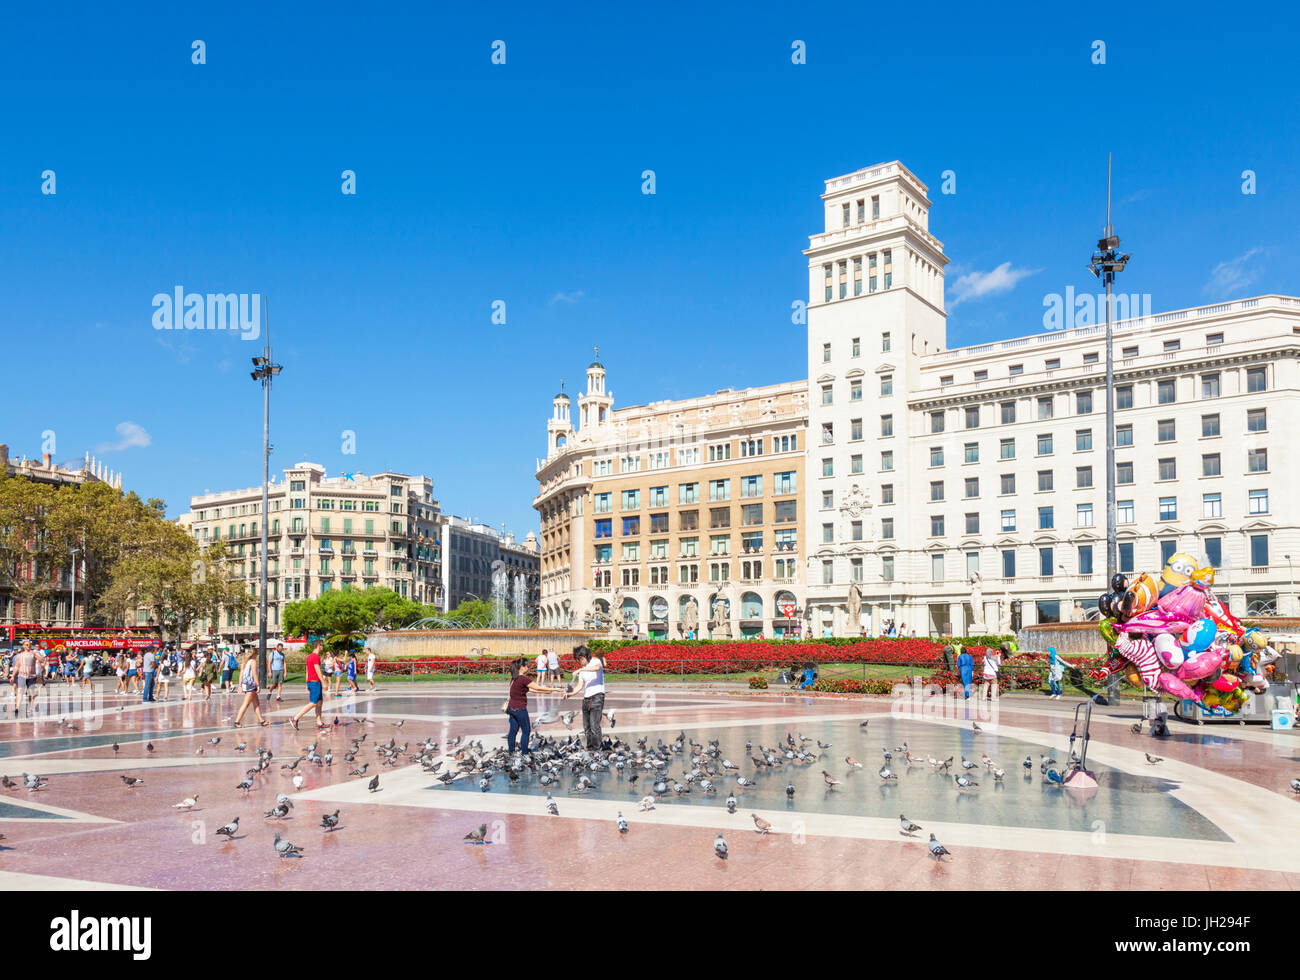 Placa de Catalunya, a large public square in the city centre of Barcelona, Catalonia (Catalunya), Spain, Europe - Stock Image